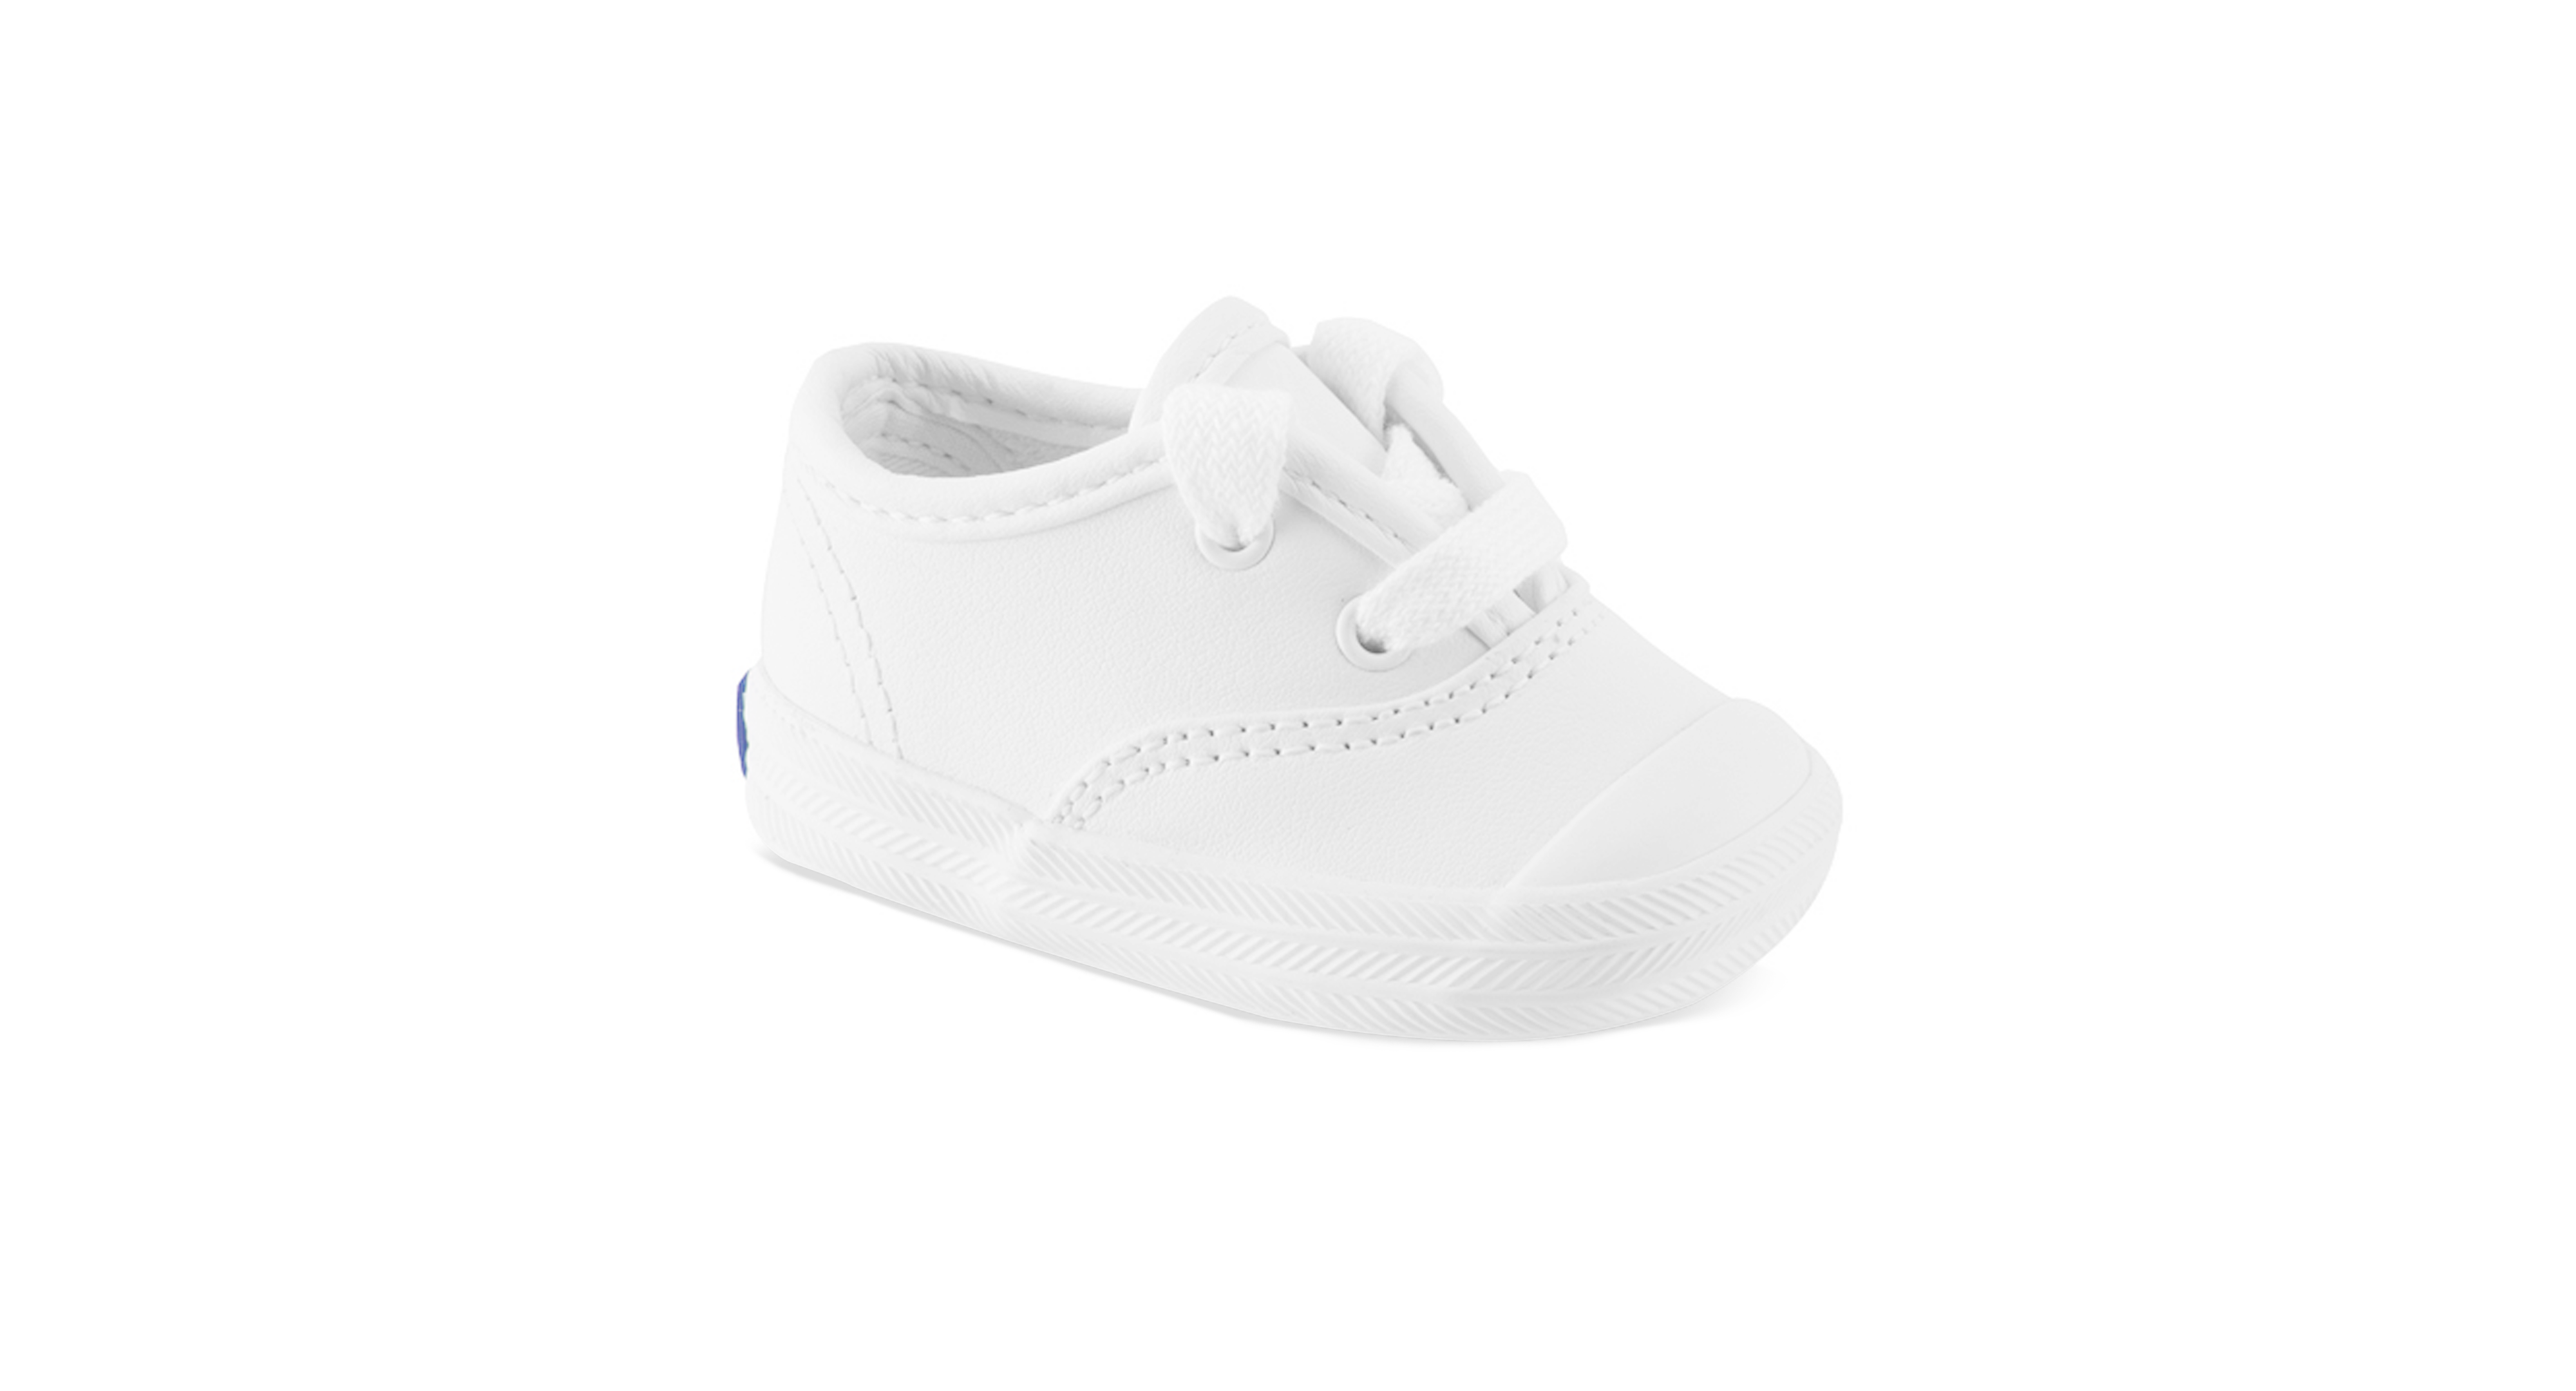 19fd5a8daea43 keds kids shoes little girls champion sneakers official store 76c53 ...